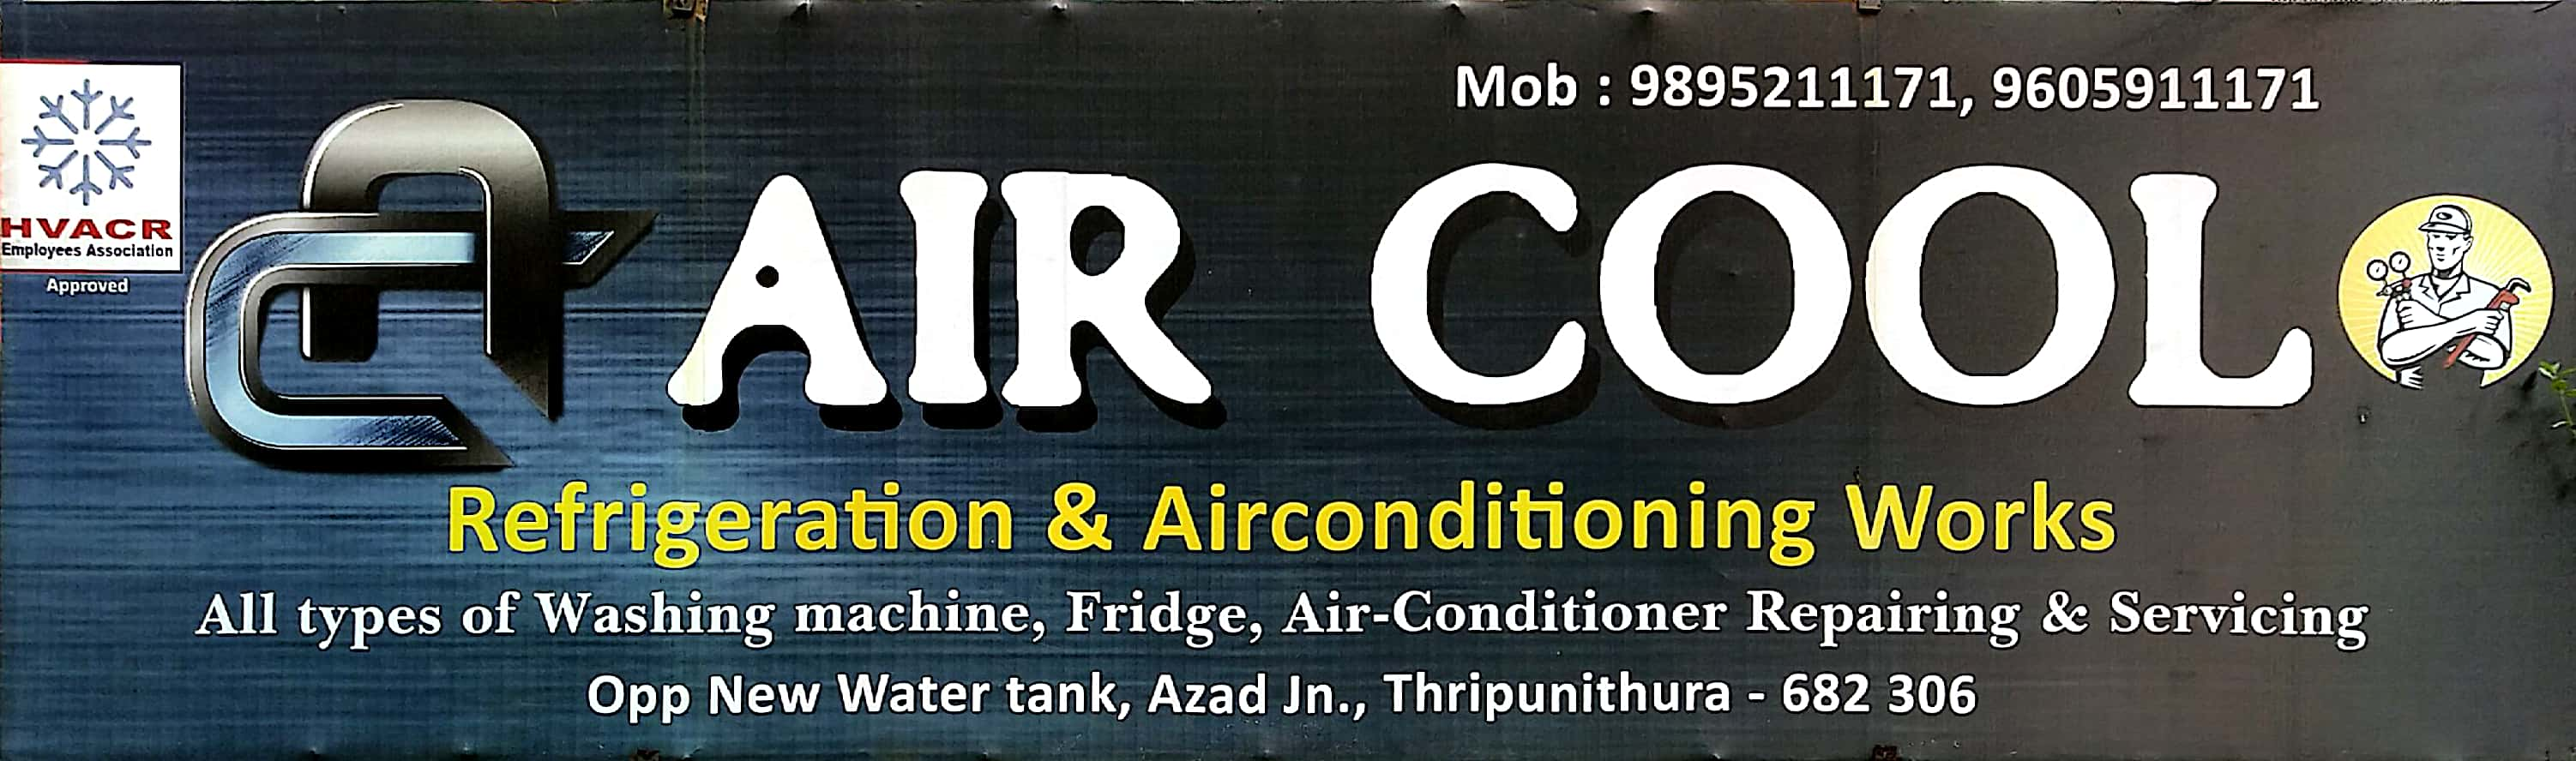 AIR COOL, AC REFRIGERATION SALES & SERVICE,  service in Thrippunithura, Ernakulam